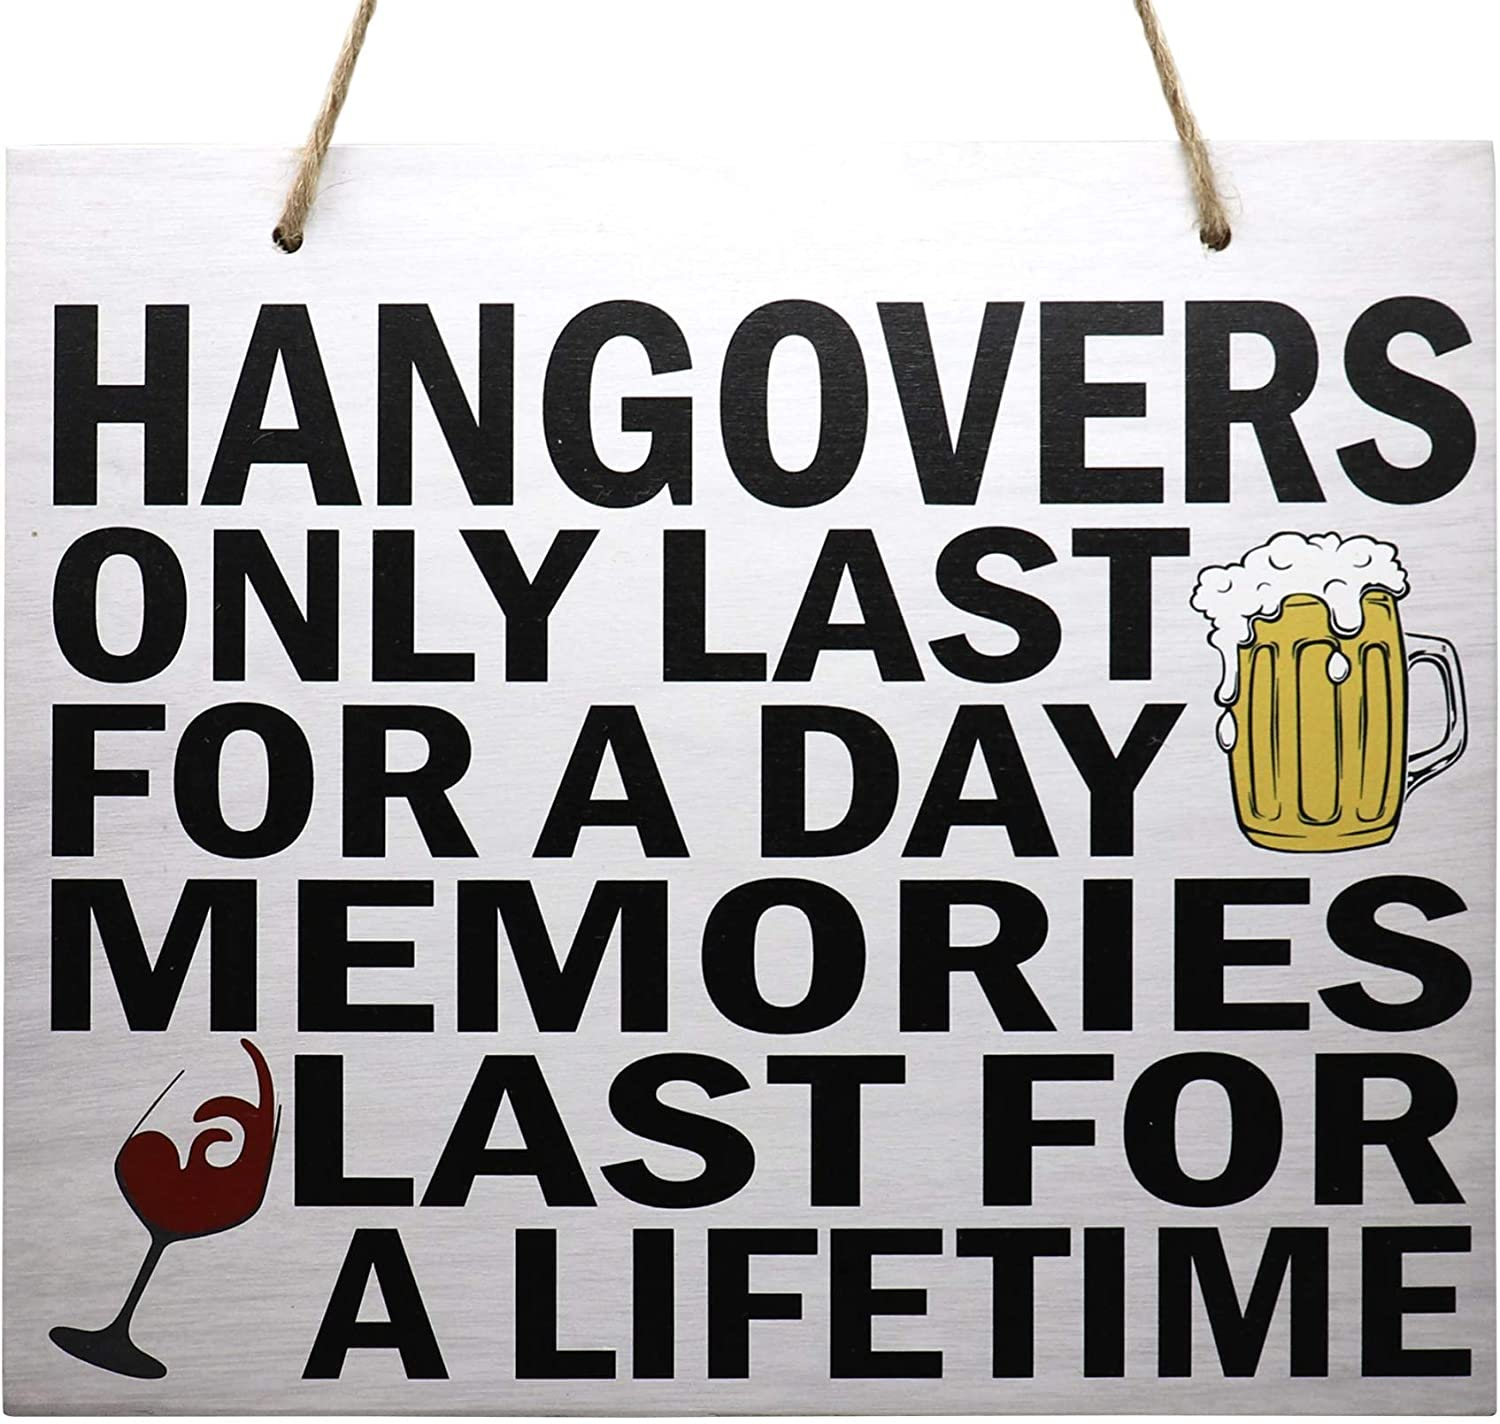 JennyGems - Hangovers Only Last for A Day, Memories Last for A Lifetime - Funny Bar Sign - Mancave, SheShed Humorous Decor - Bar Humor Art - Fun Pub Decoration - Funny Alcohol Bar Signs, Beer Signs